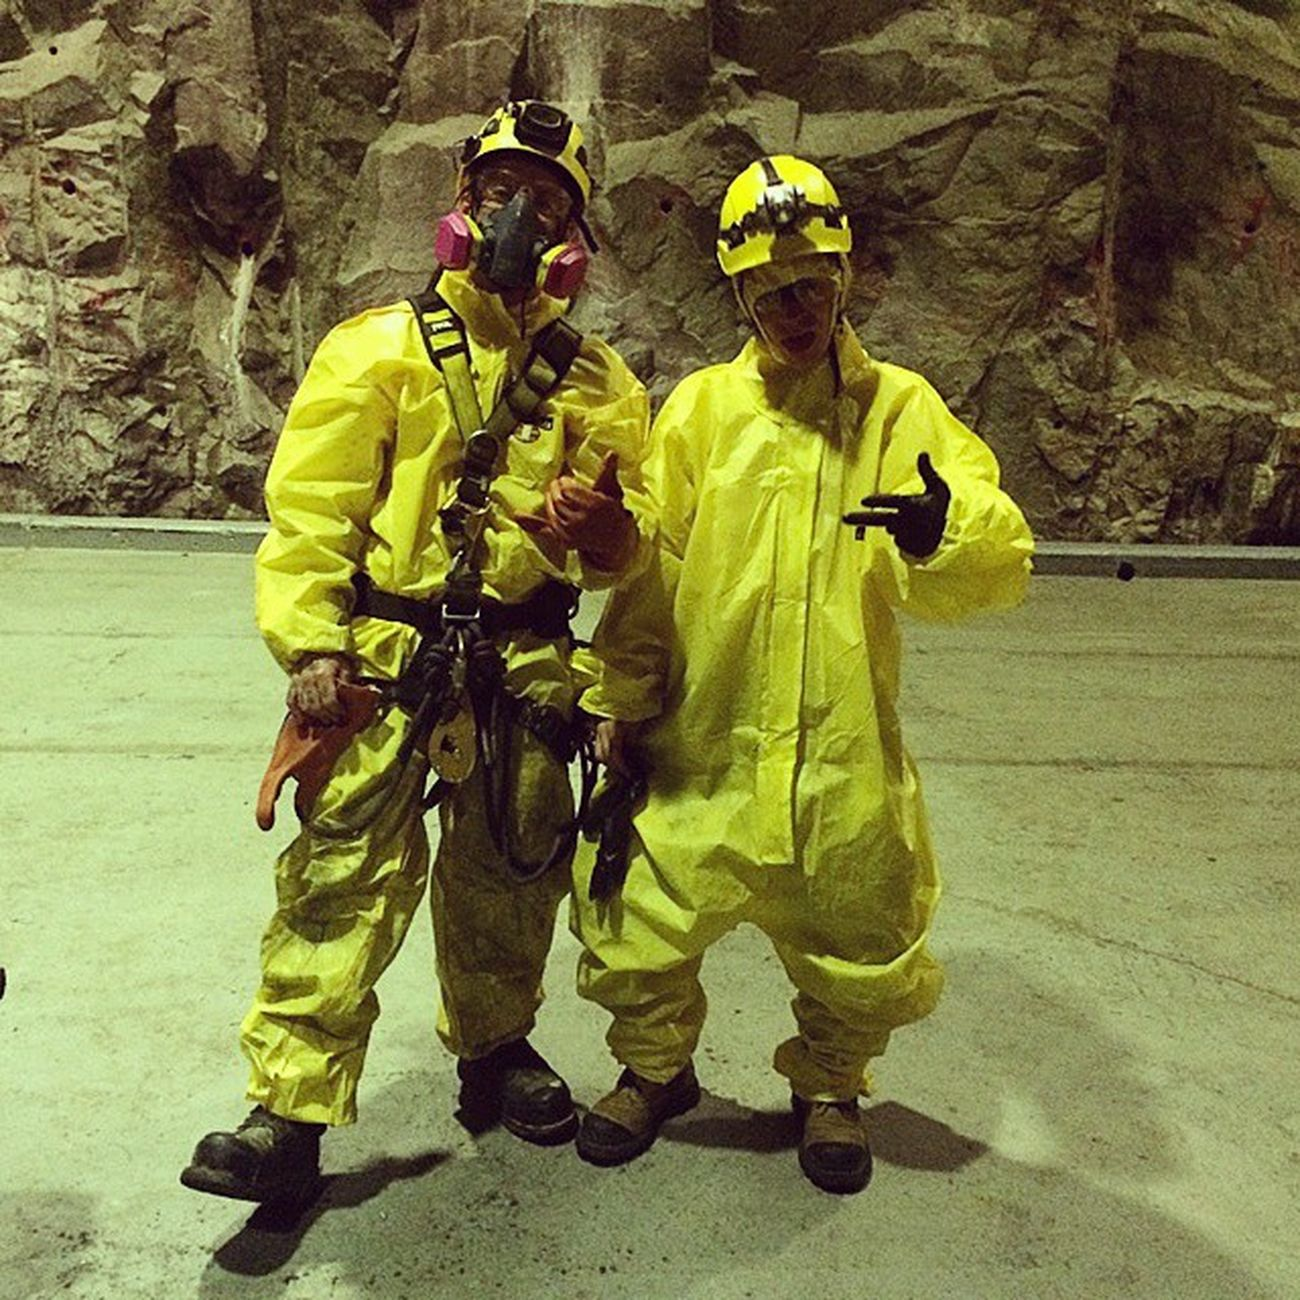 One size fits all? Hazmat Umpalumpa Halloweenawaits